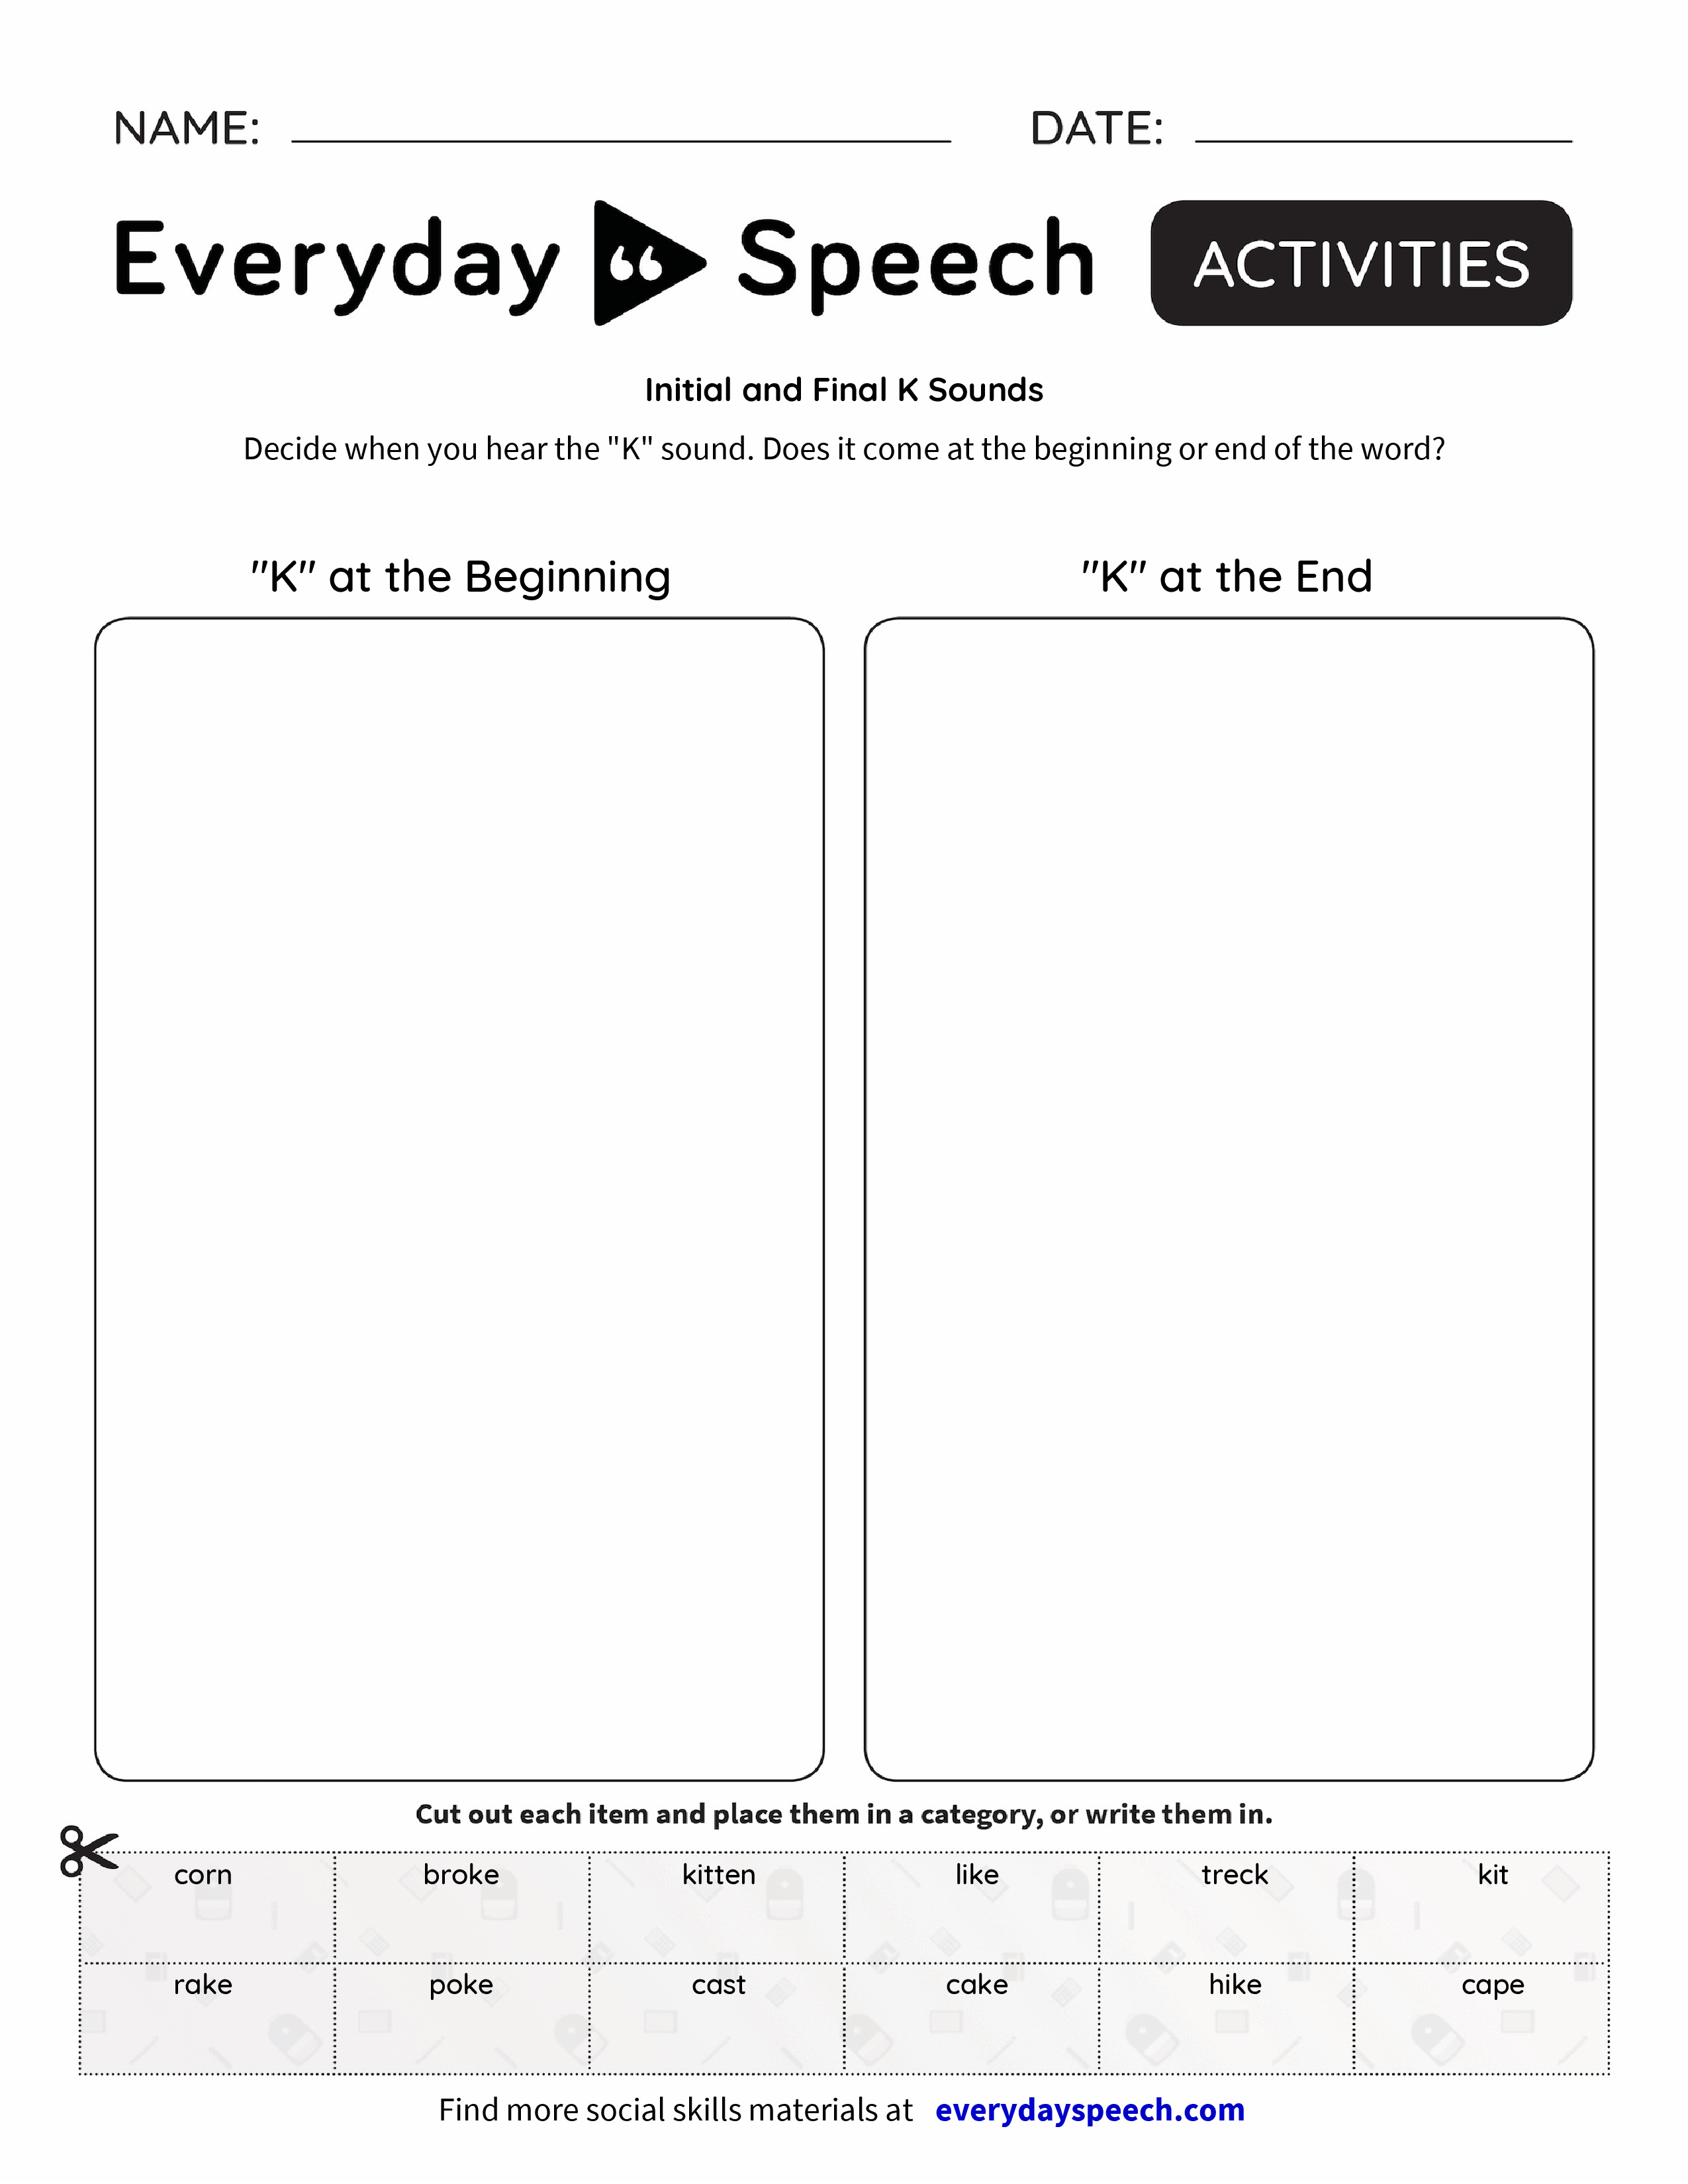 Initial and Final K Sounds Everyday Speech Everyday Speech – Sound Worksheet